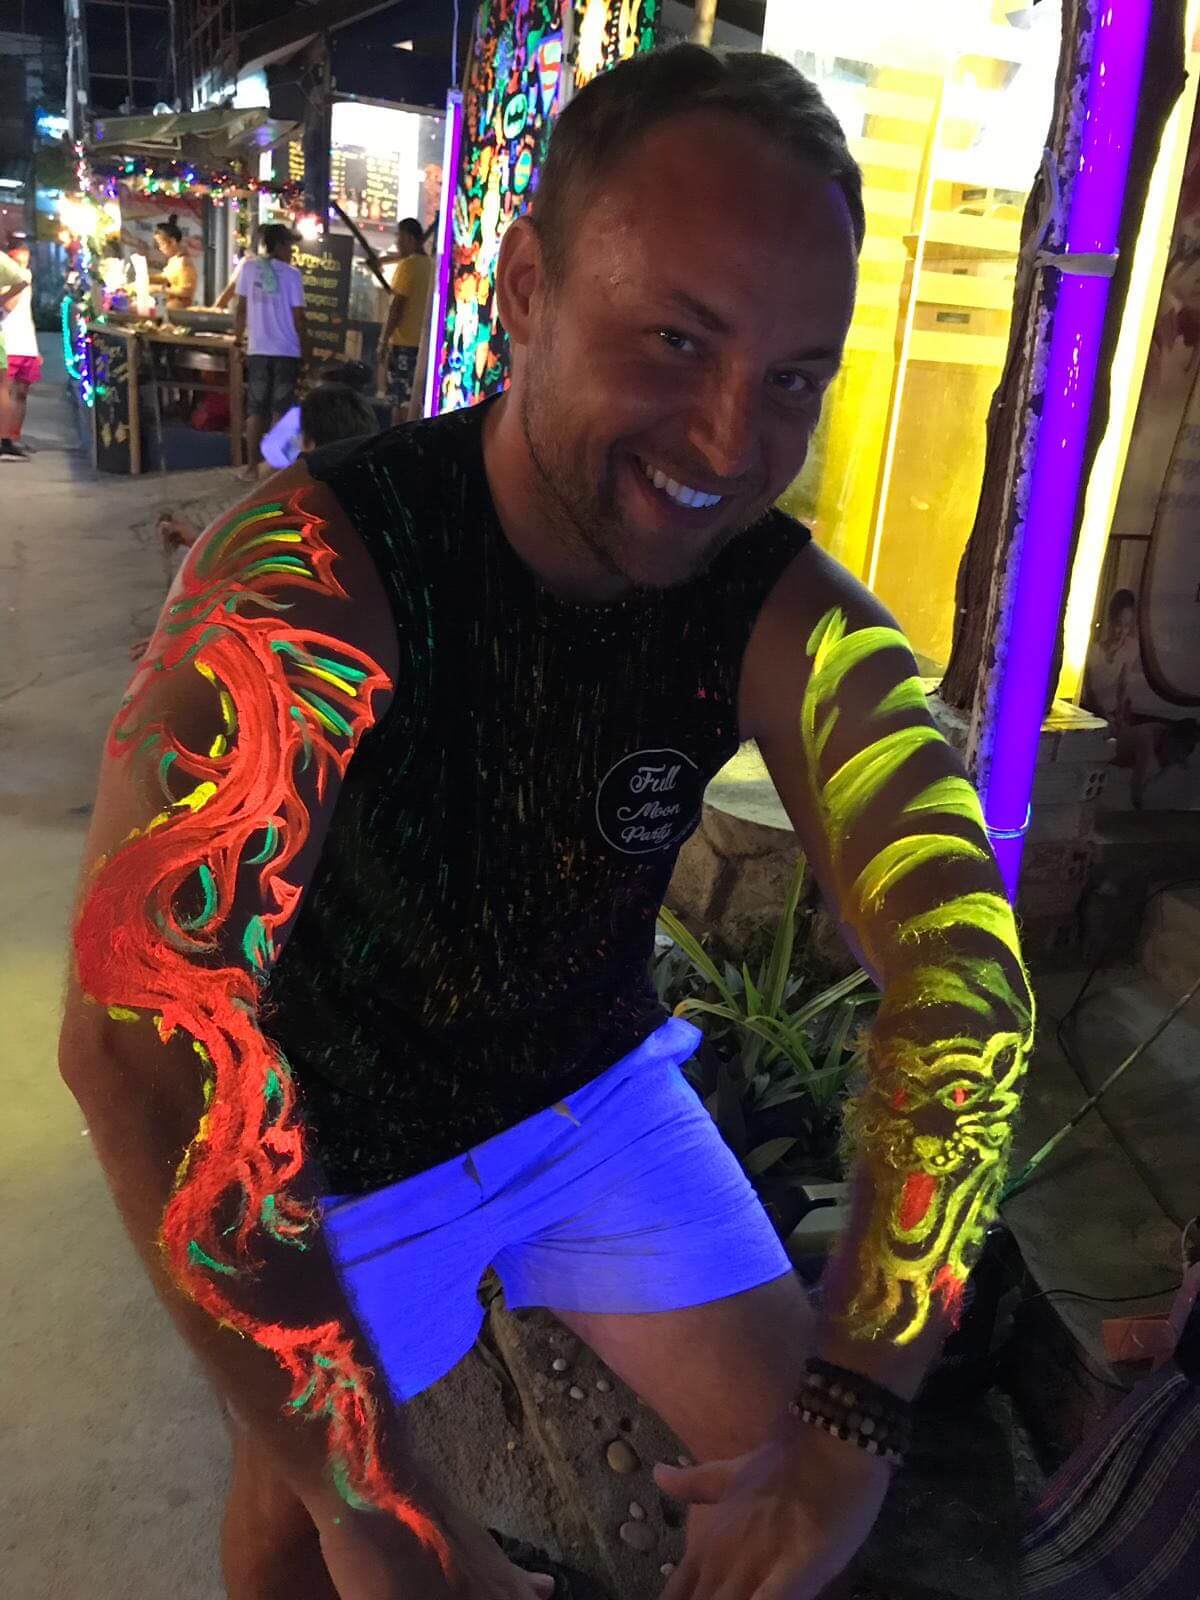 Keith Faros painted glow in the dark tattoos in Thailand